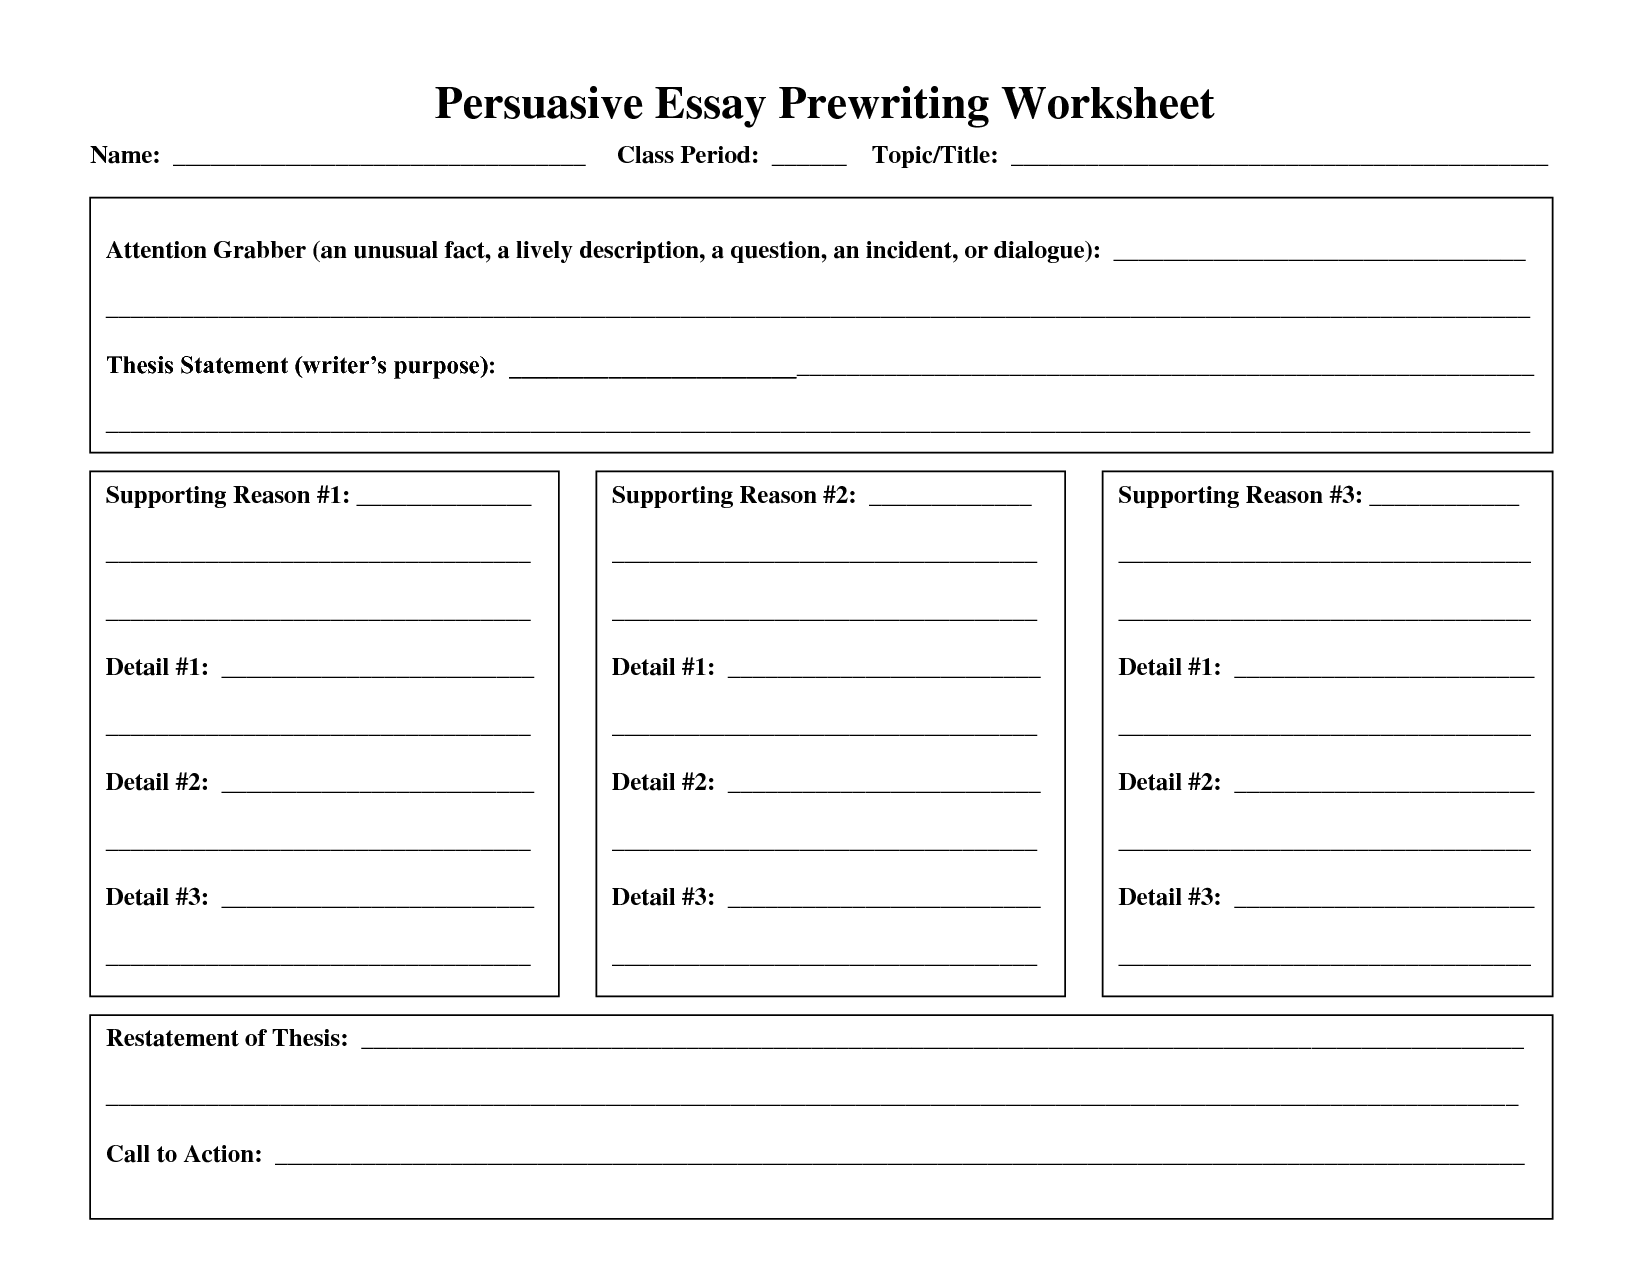 17 Best Images Of Persuasive Writing Worksheets